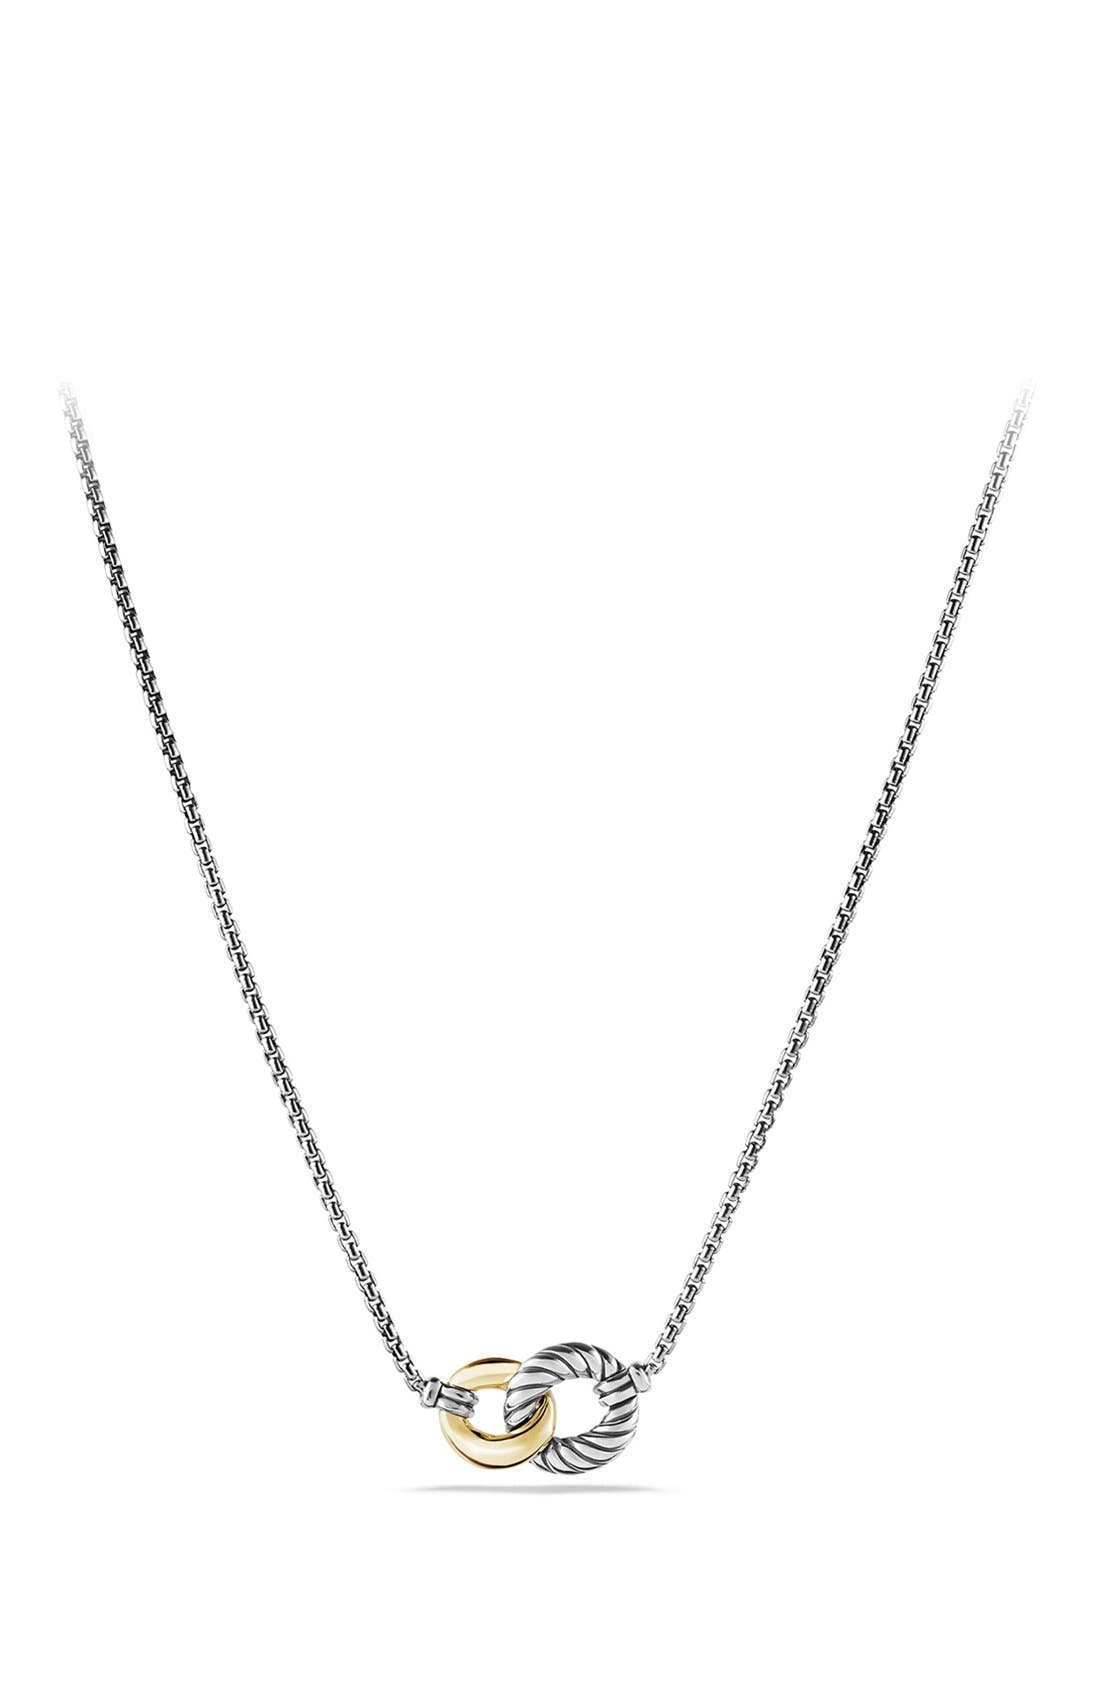 Alternate Image 1 Selected - David Yurman 'Belmont' Curb Link Necklace with 18K Gold